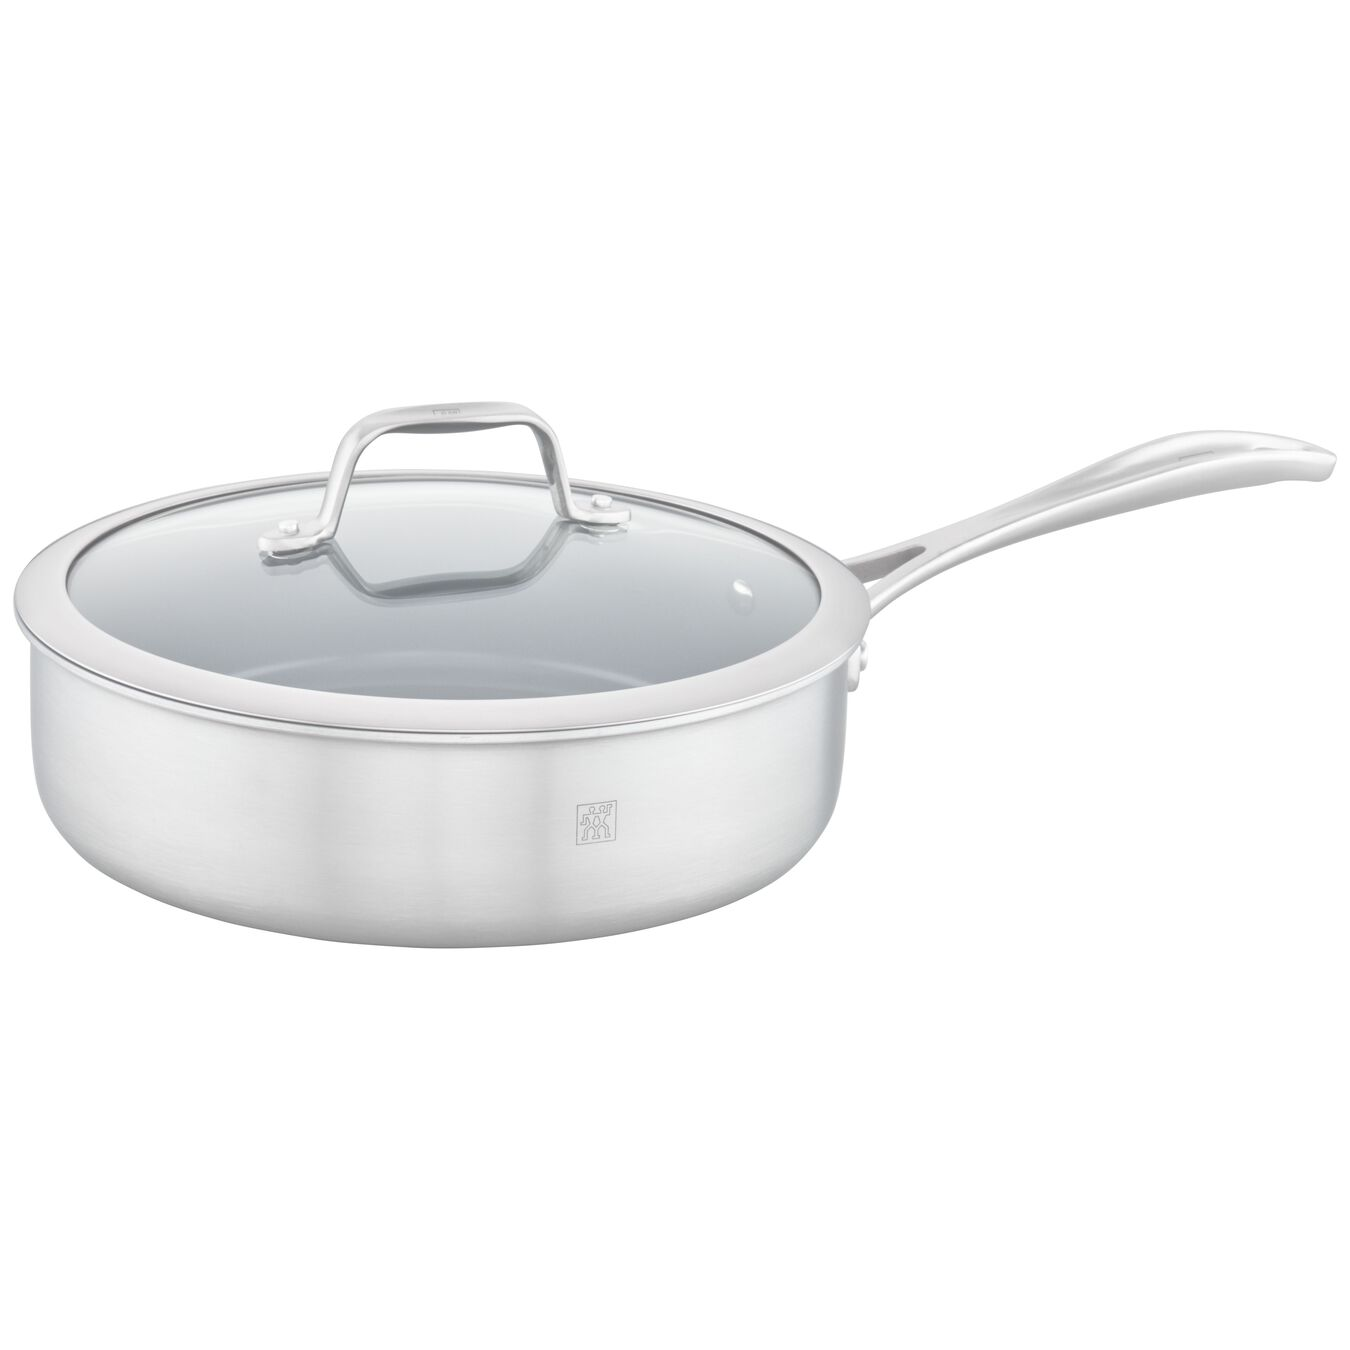 9.5-inch Saute pan, 18/10 Stainless Steel ,,large 1